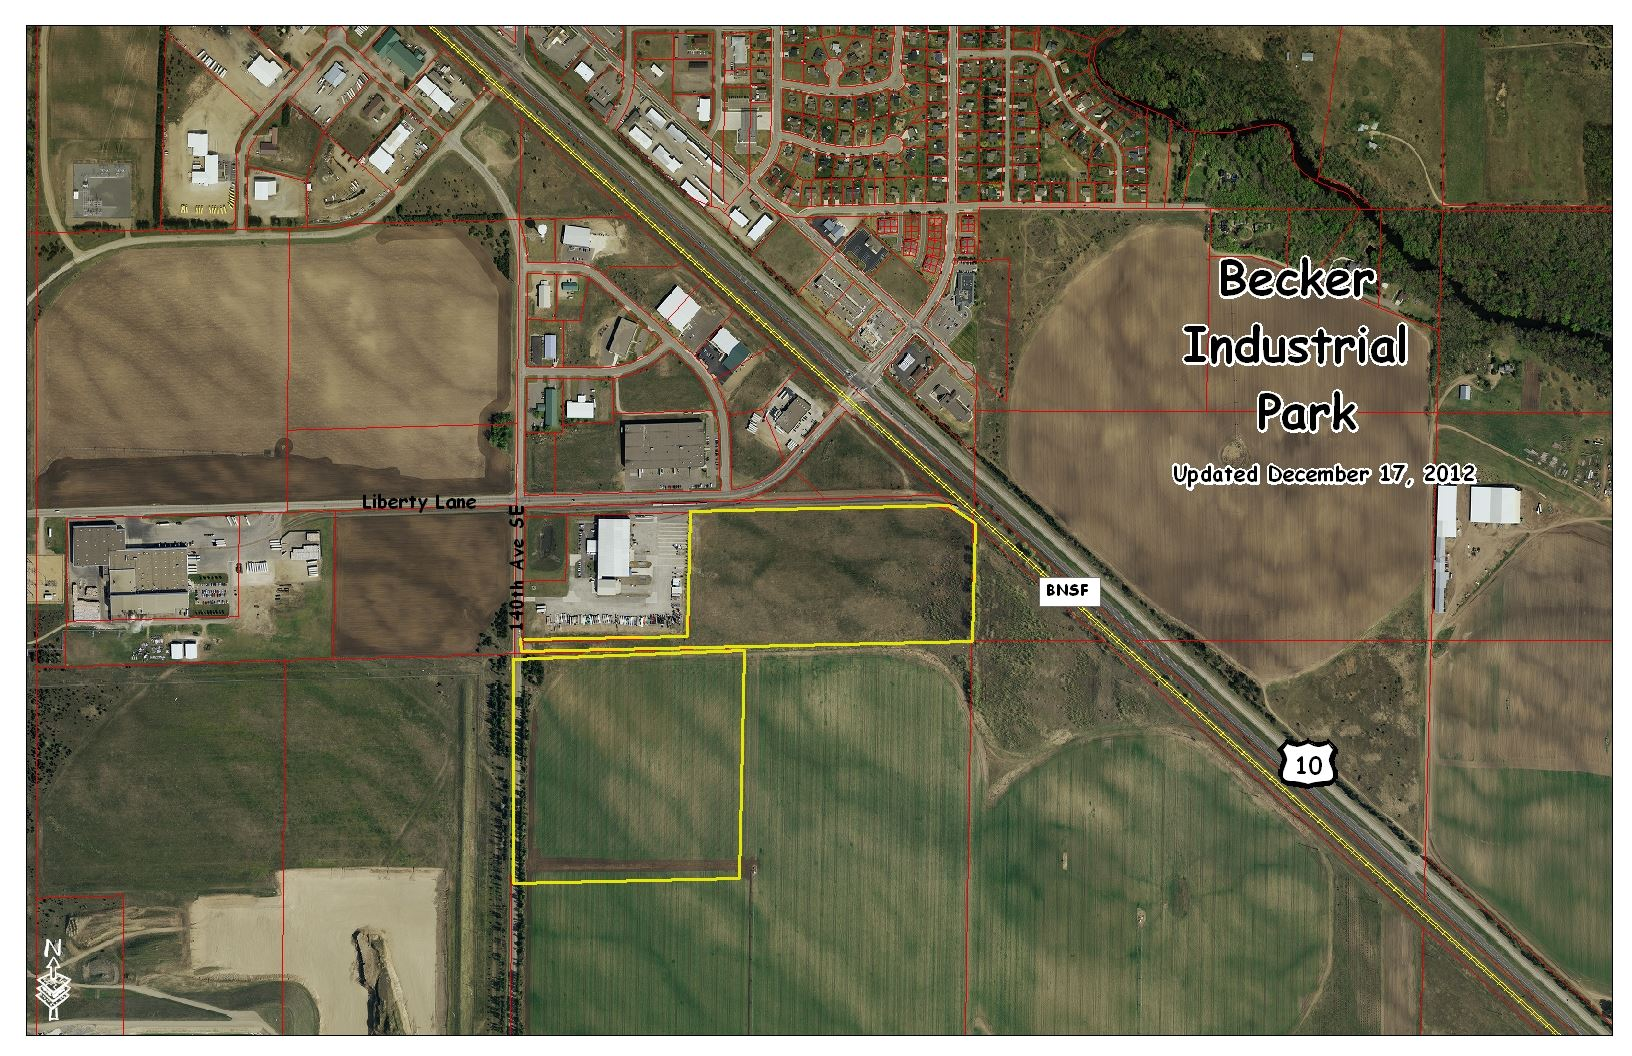 2012 Industrial Park Aerial Photo